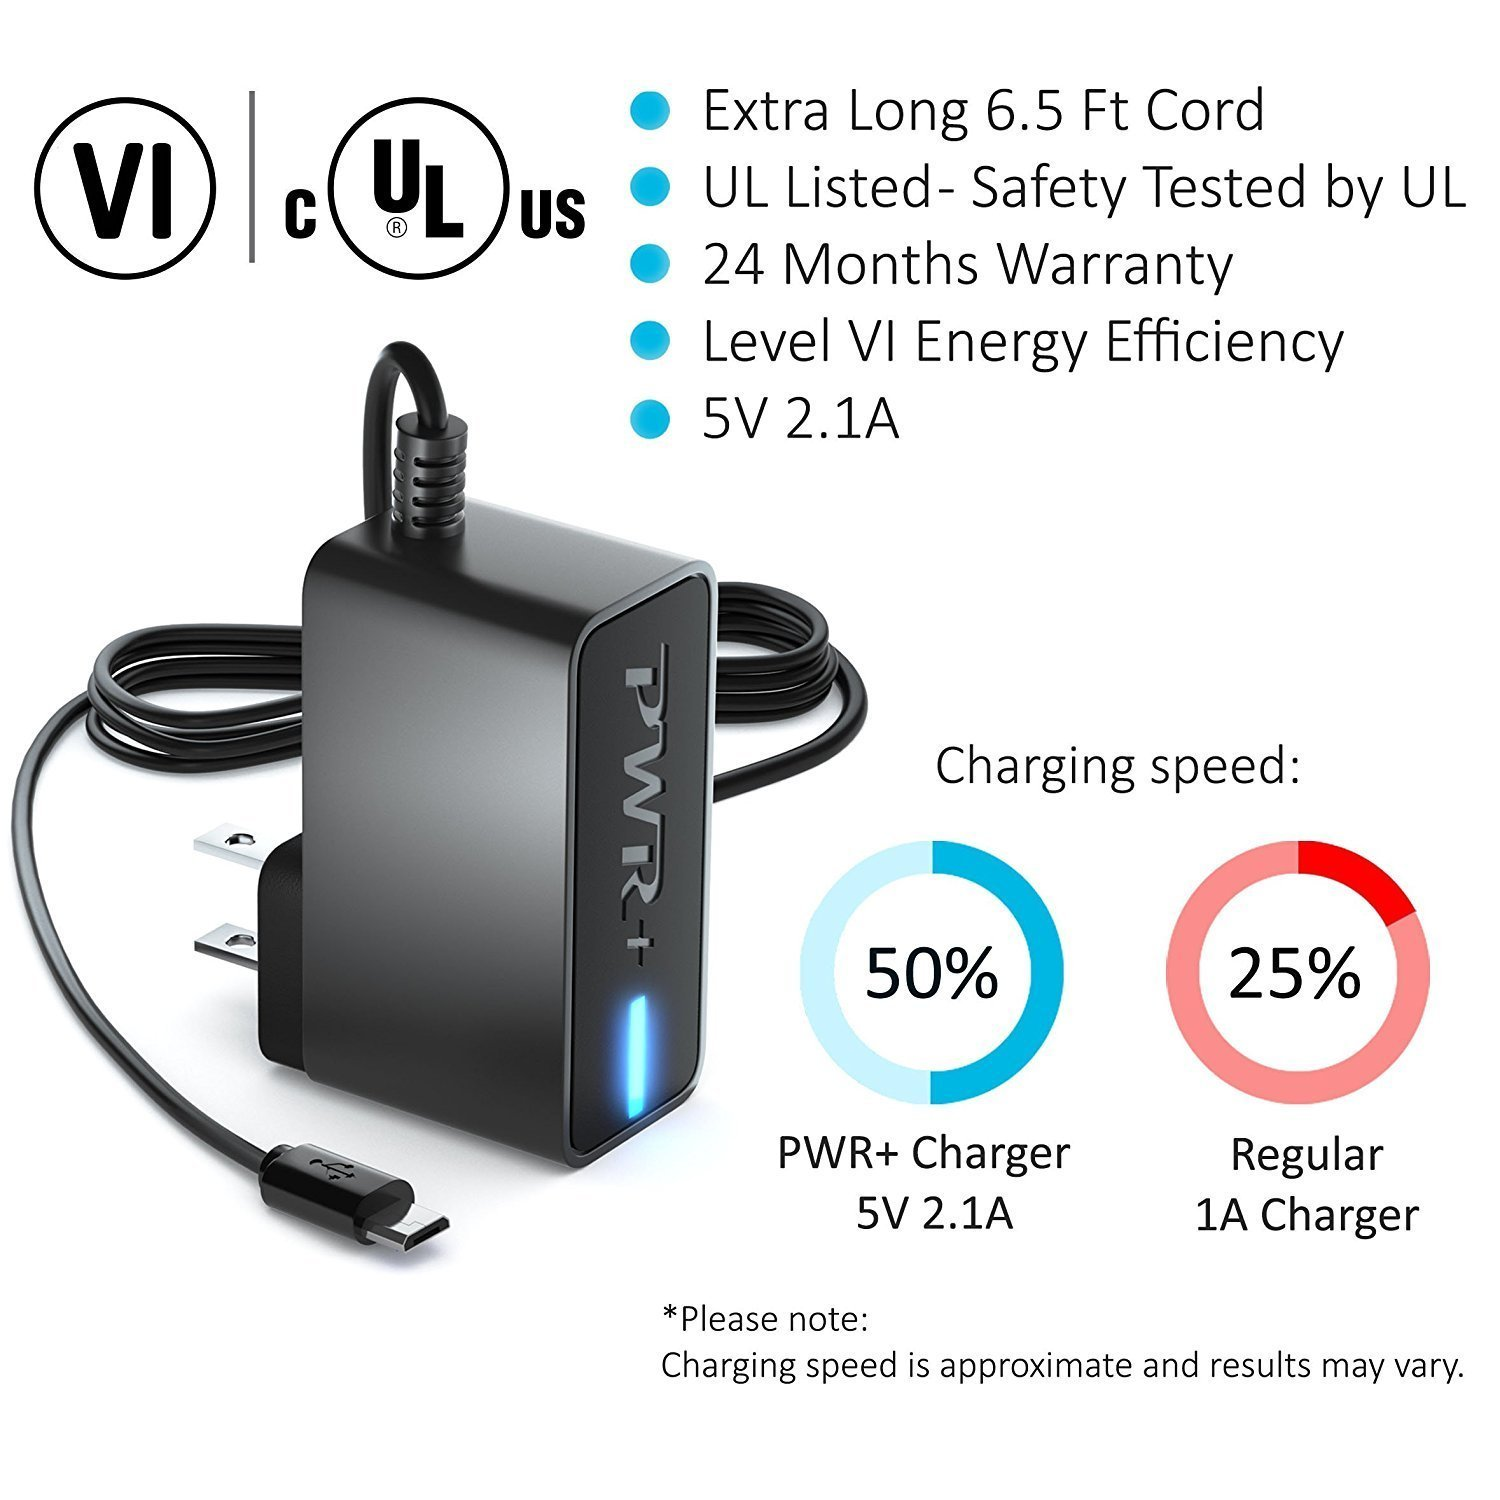 10W Extra Long 6.7 Ft Power Adapter for Streaming Stick AC Wall Charger Power Supply Cord UL Listed